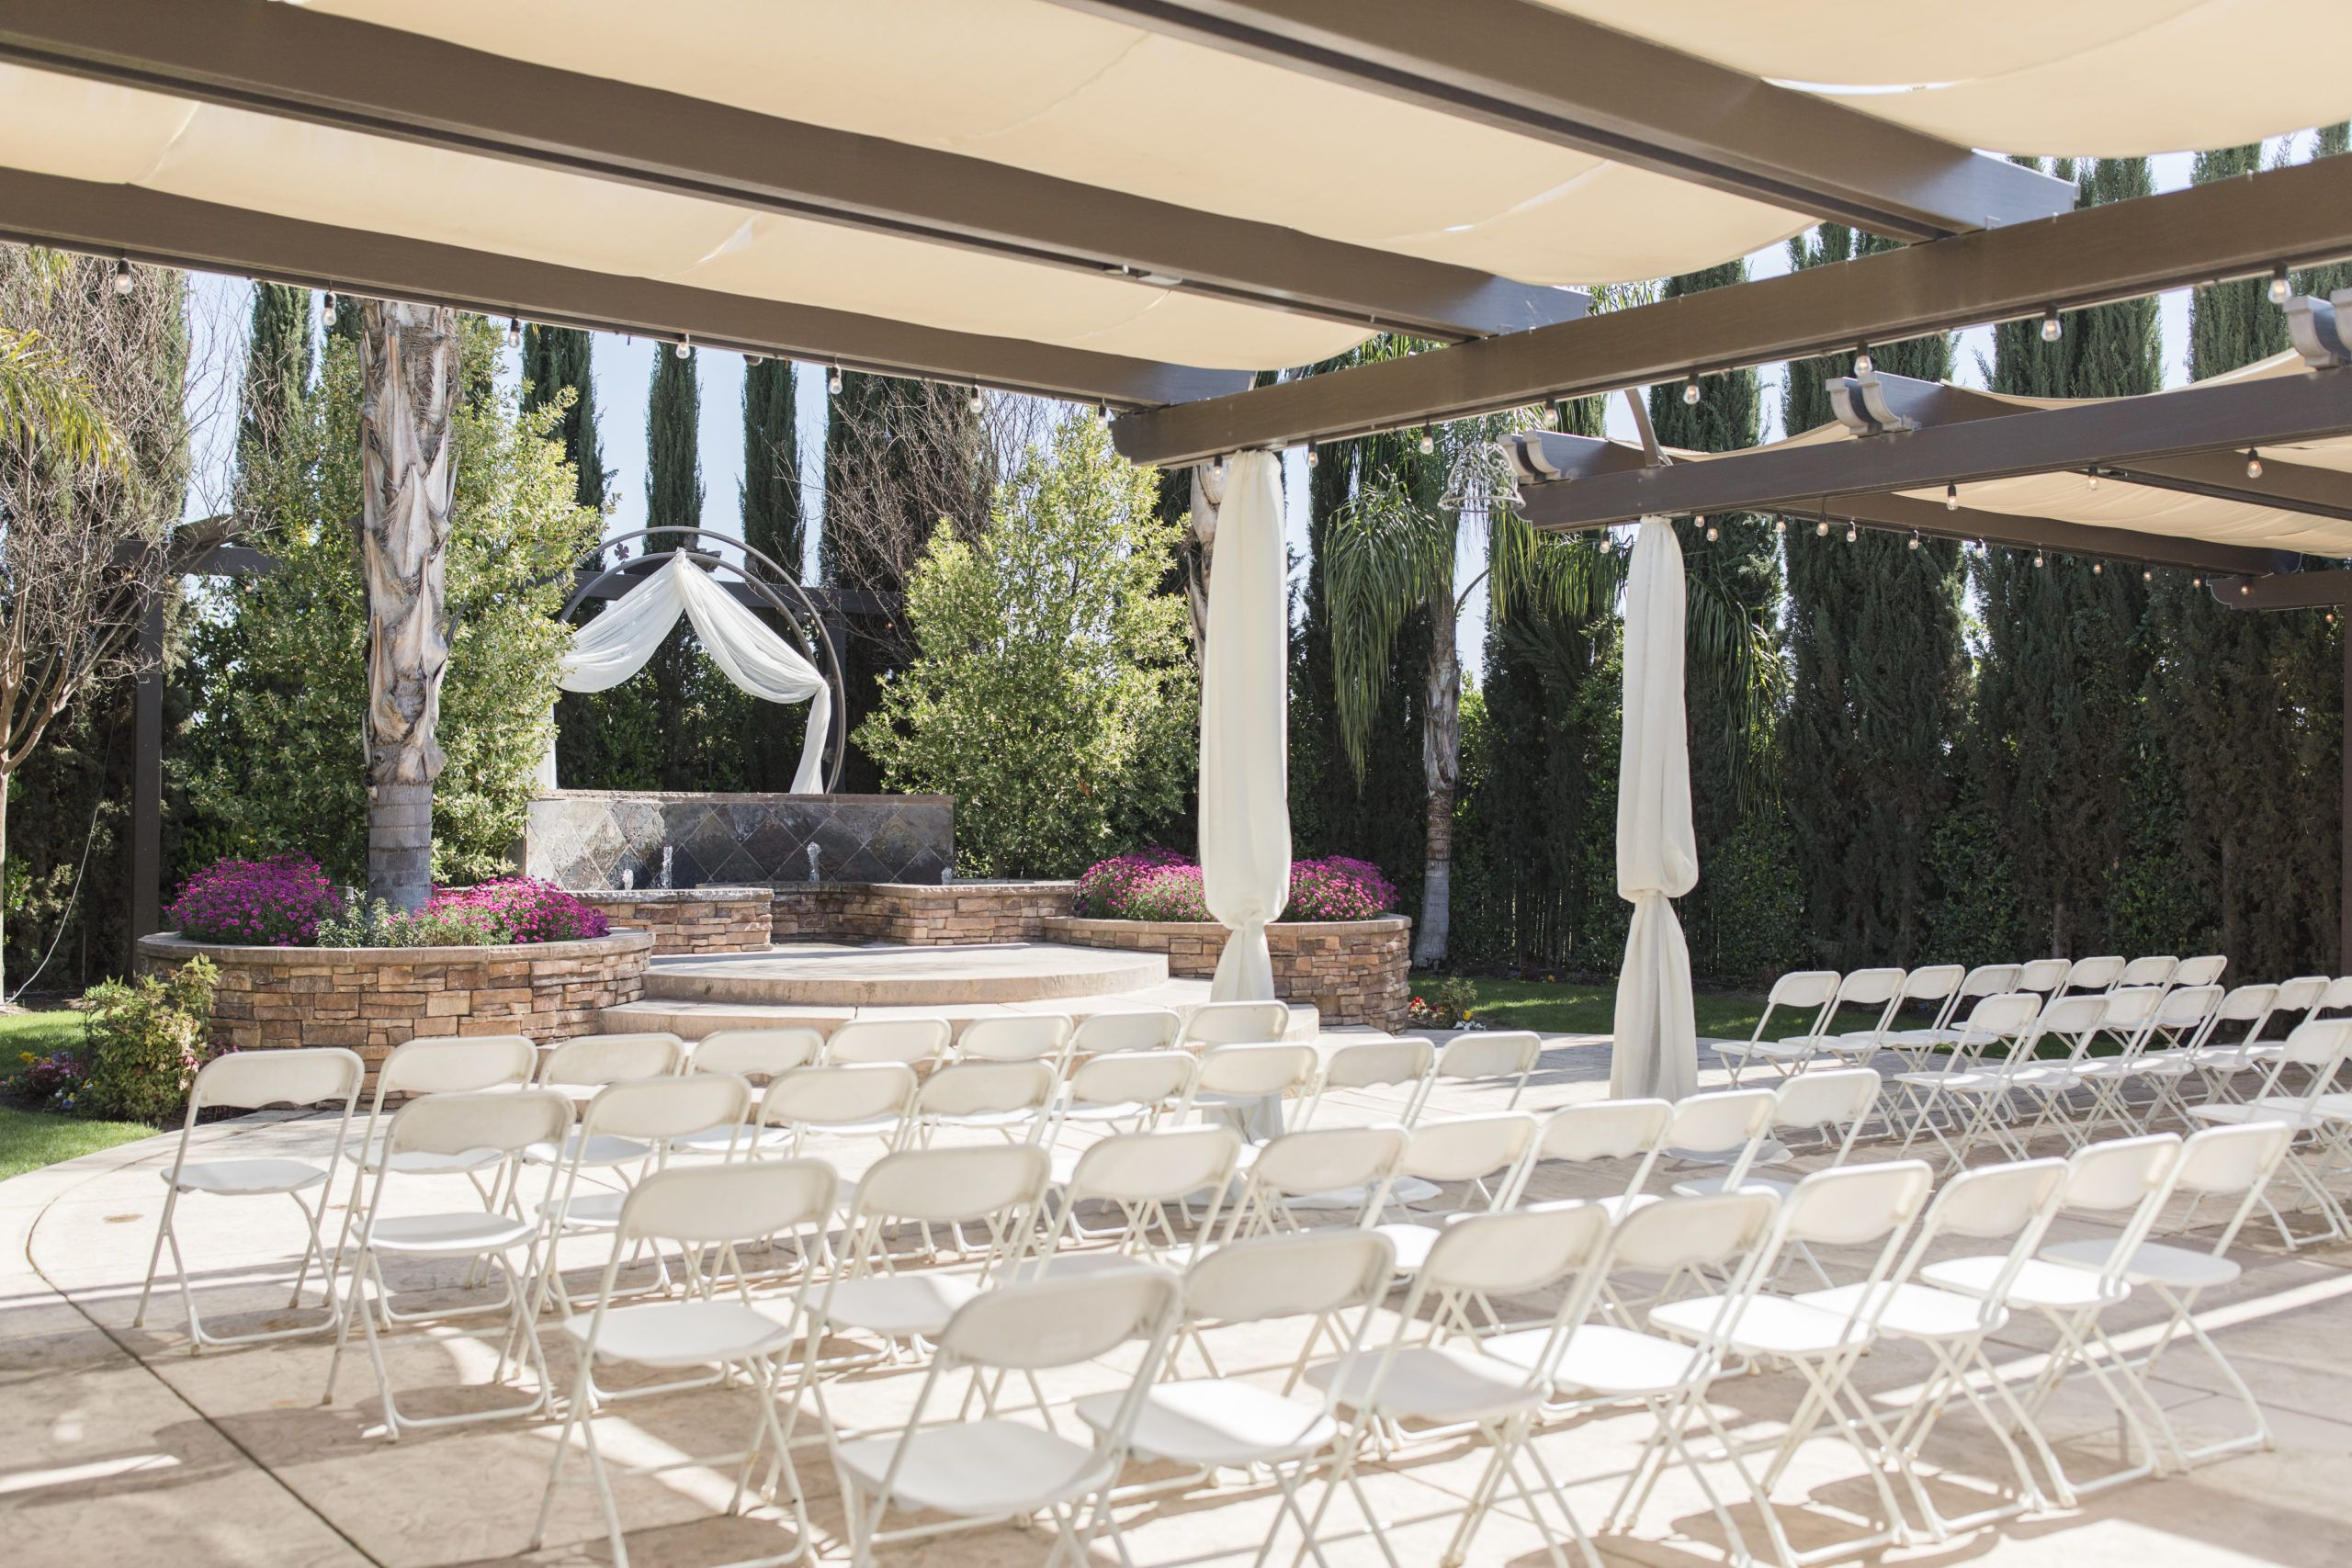 Fresno Fields By Wedgewood Weddings Is An All Inclusive Wedding Venue Located In Fre In 2020 Wedgewood Wedding Northern California Wedding Venues Classic Wedding Venue